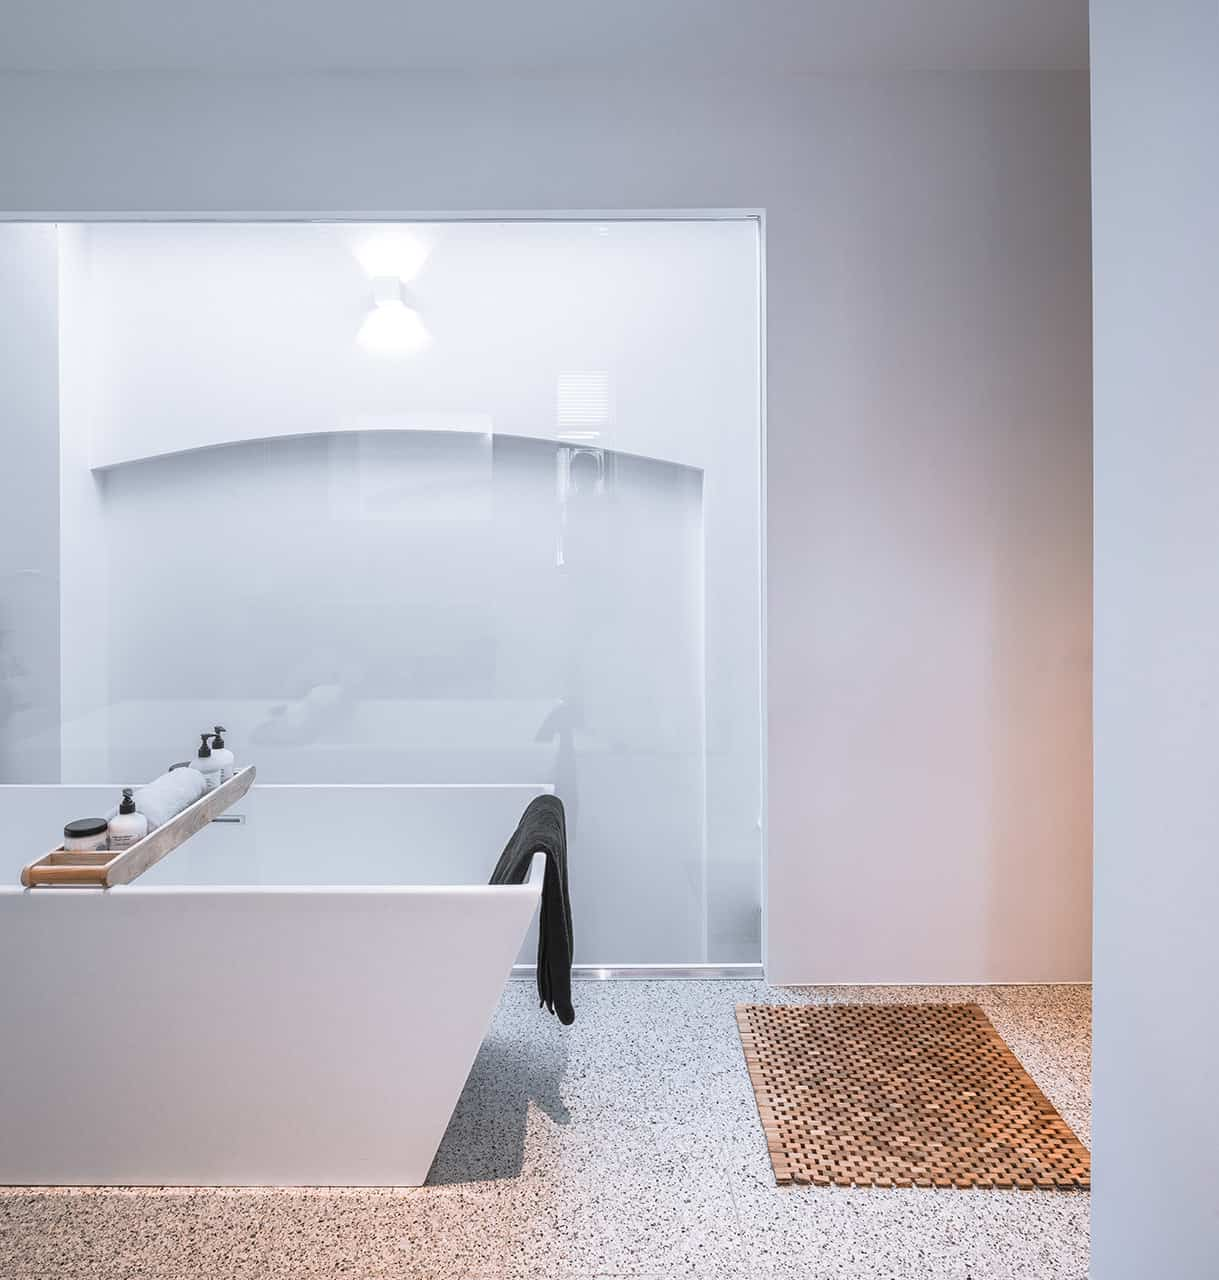 Freestanding white modern bathtub agains large picture window.